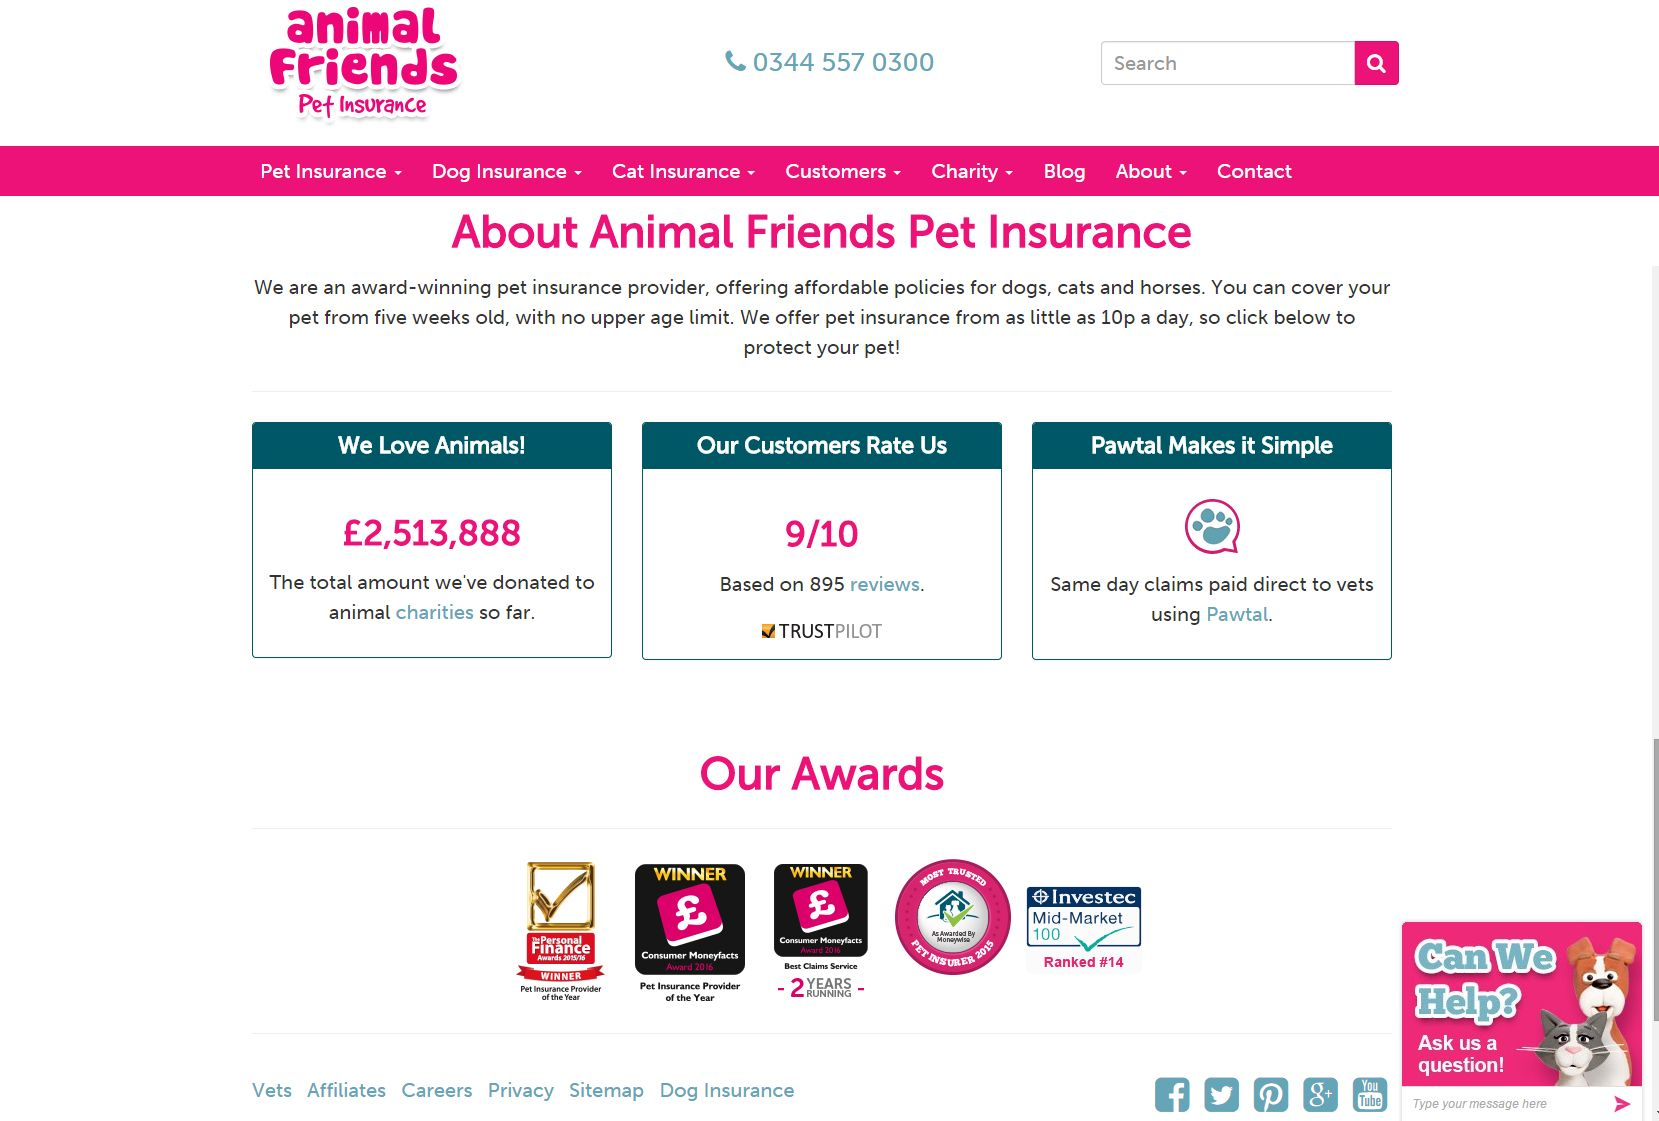 Animal Friends Celebrating Their Cmfawards Success Online Https Www Animalfriends Co Uk Pet Insurance Dogs Success Online Cat Insurance